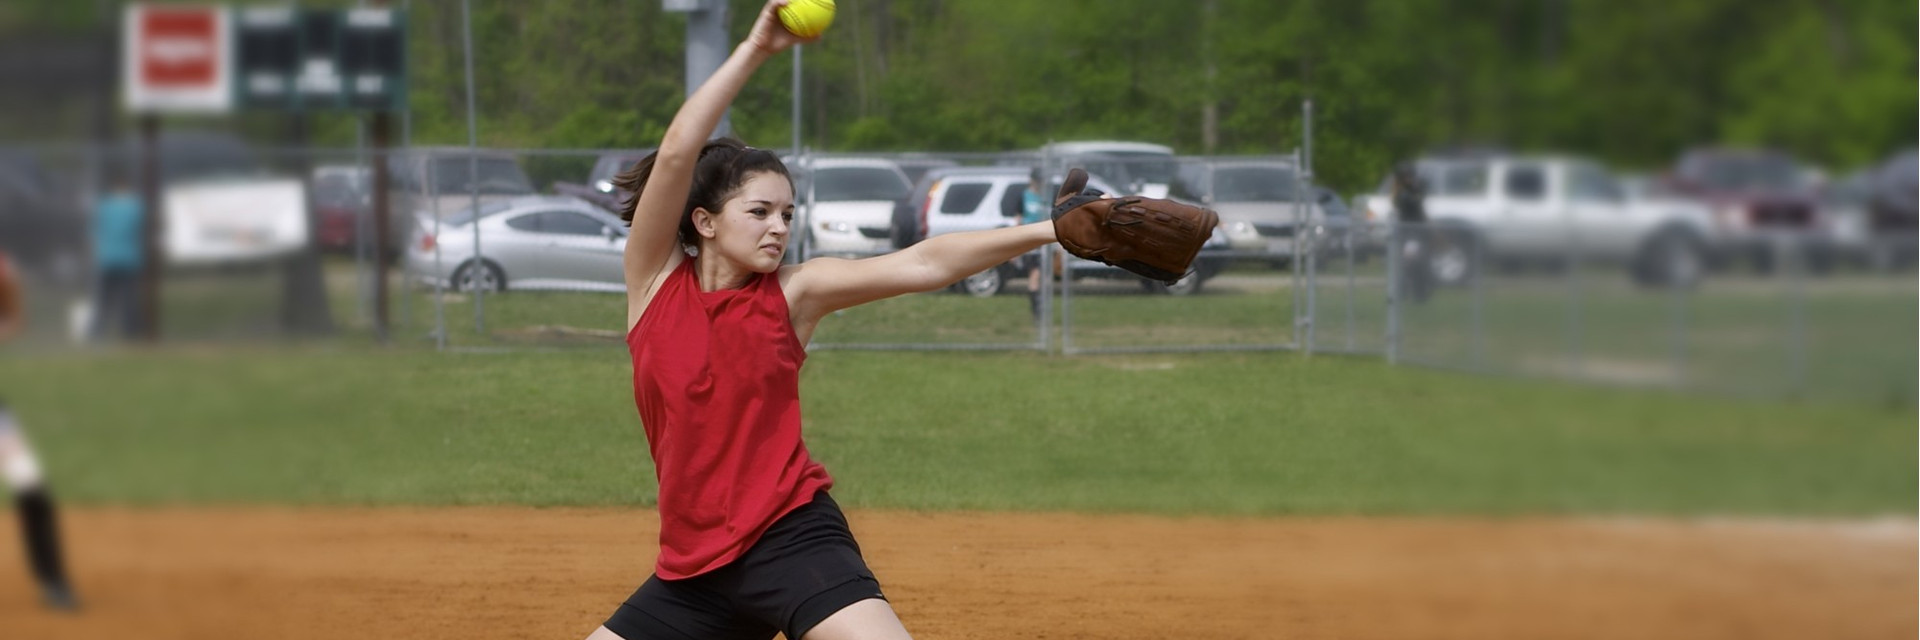 Seven Ways to Prevent Softball Pitcher Injuries | Rothman